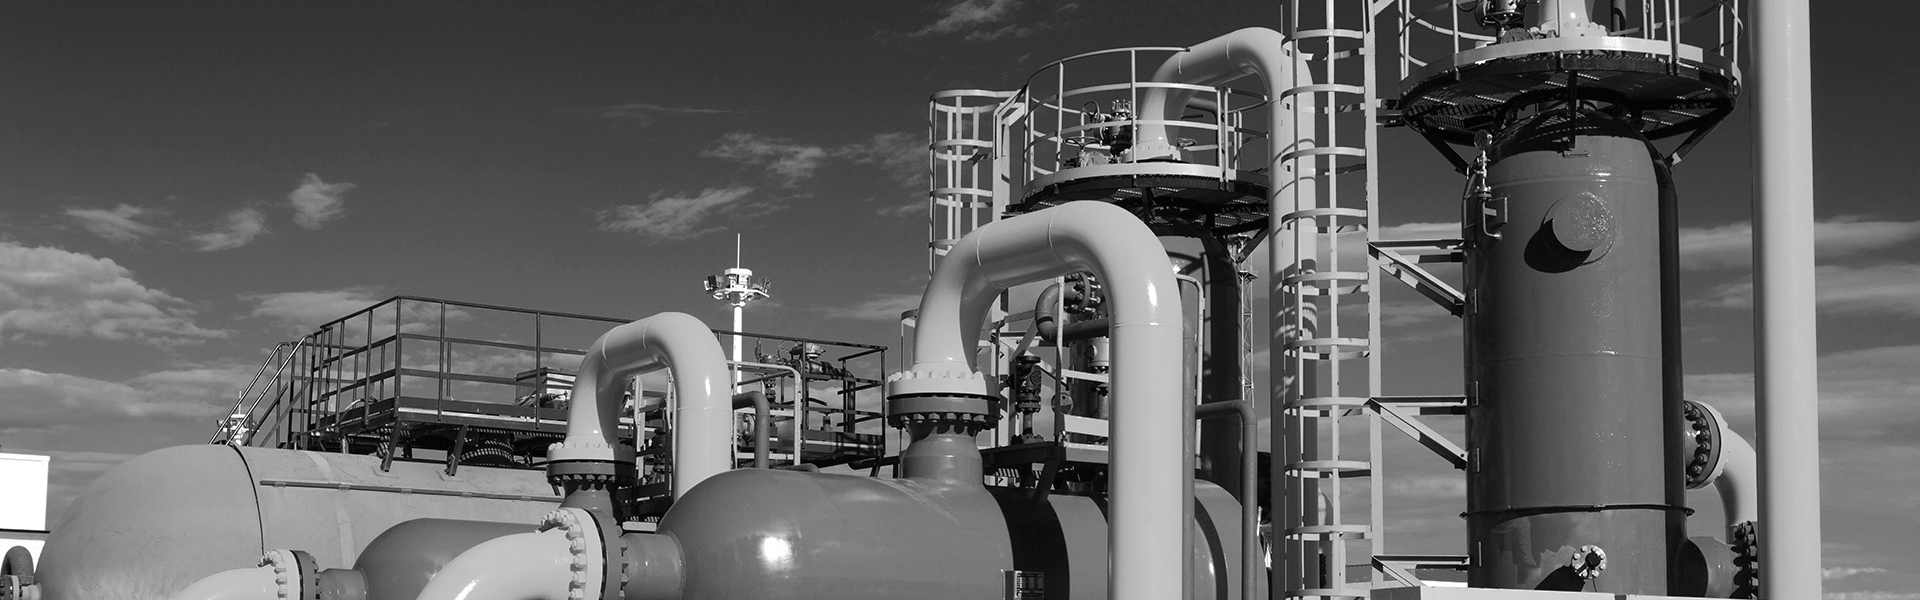 Protective Coatings For The Petrochemical Industry Us